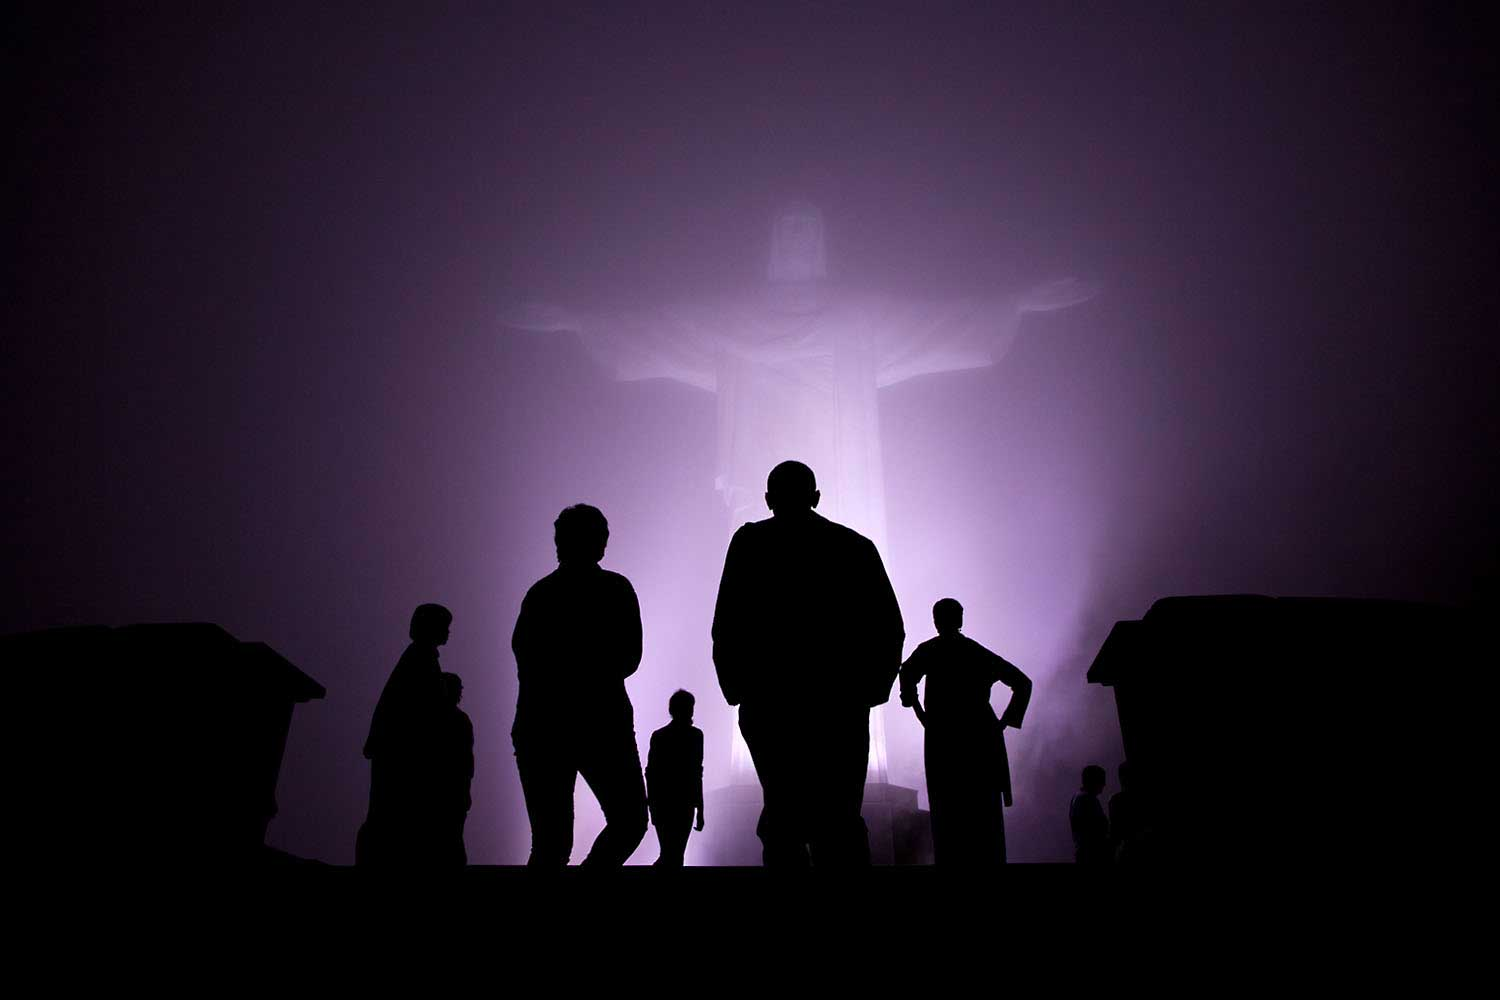 The Obama family was scheduled to tour the Christ the Redeemer statue in Rio de Janeiro, Brazil, before dinner one night March 20, 2011. But when heavy fog rolled in, they decided to cancel the visit. After dinner though, the fog had dissipated somewhat so they decided to make the drive up the mountain after all. It was quite clear when they arrived and then the fog started to roll back in. I managed to capture this silhouette as they viewed the statute one last time just before departure.